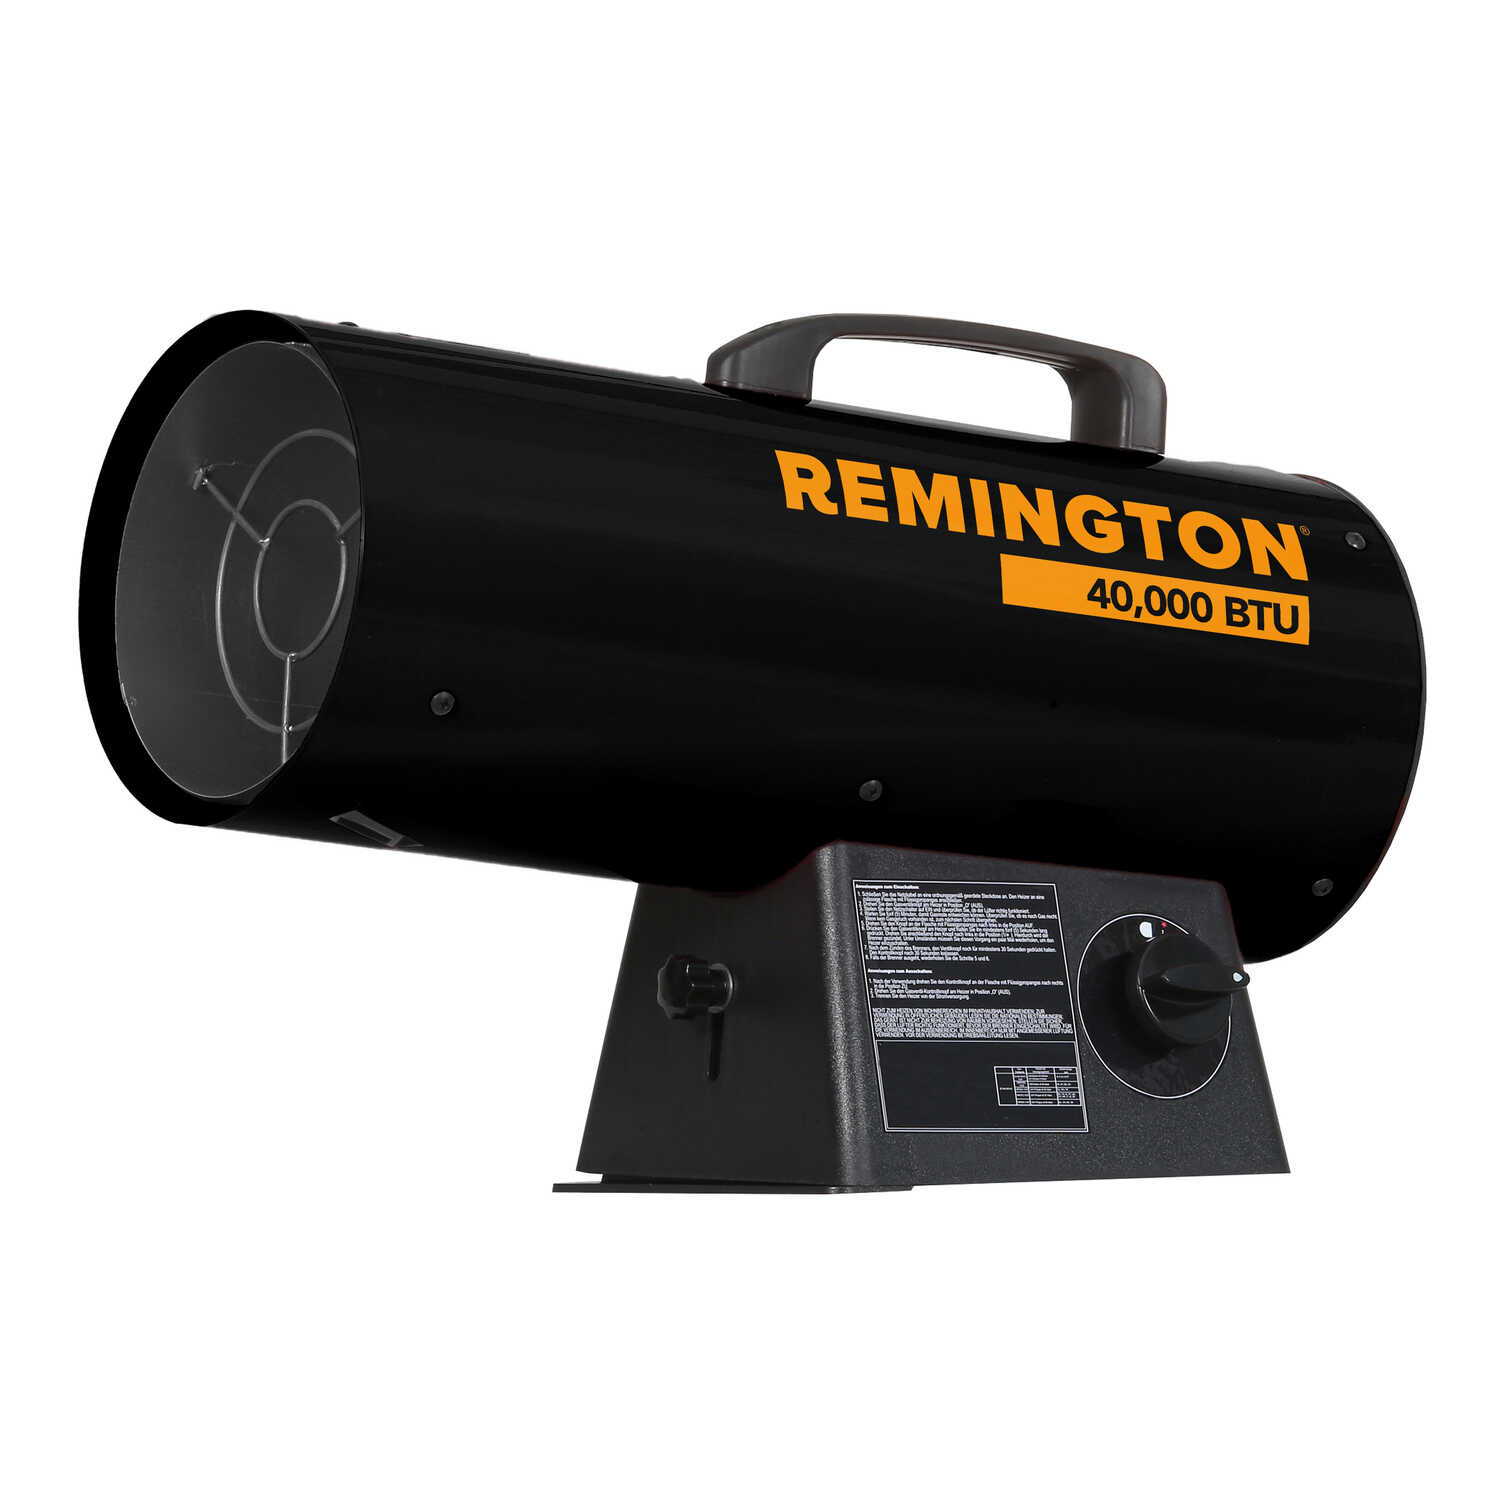 Remington 1000 Sq Ft Propane Forced Air Heater Ace